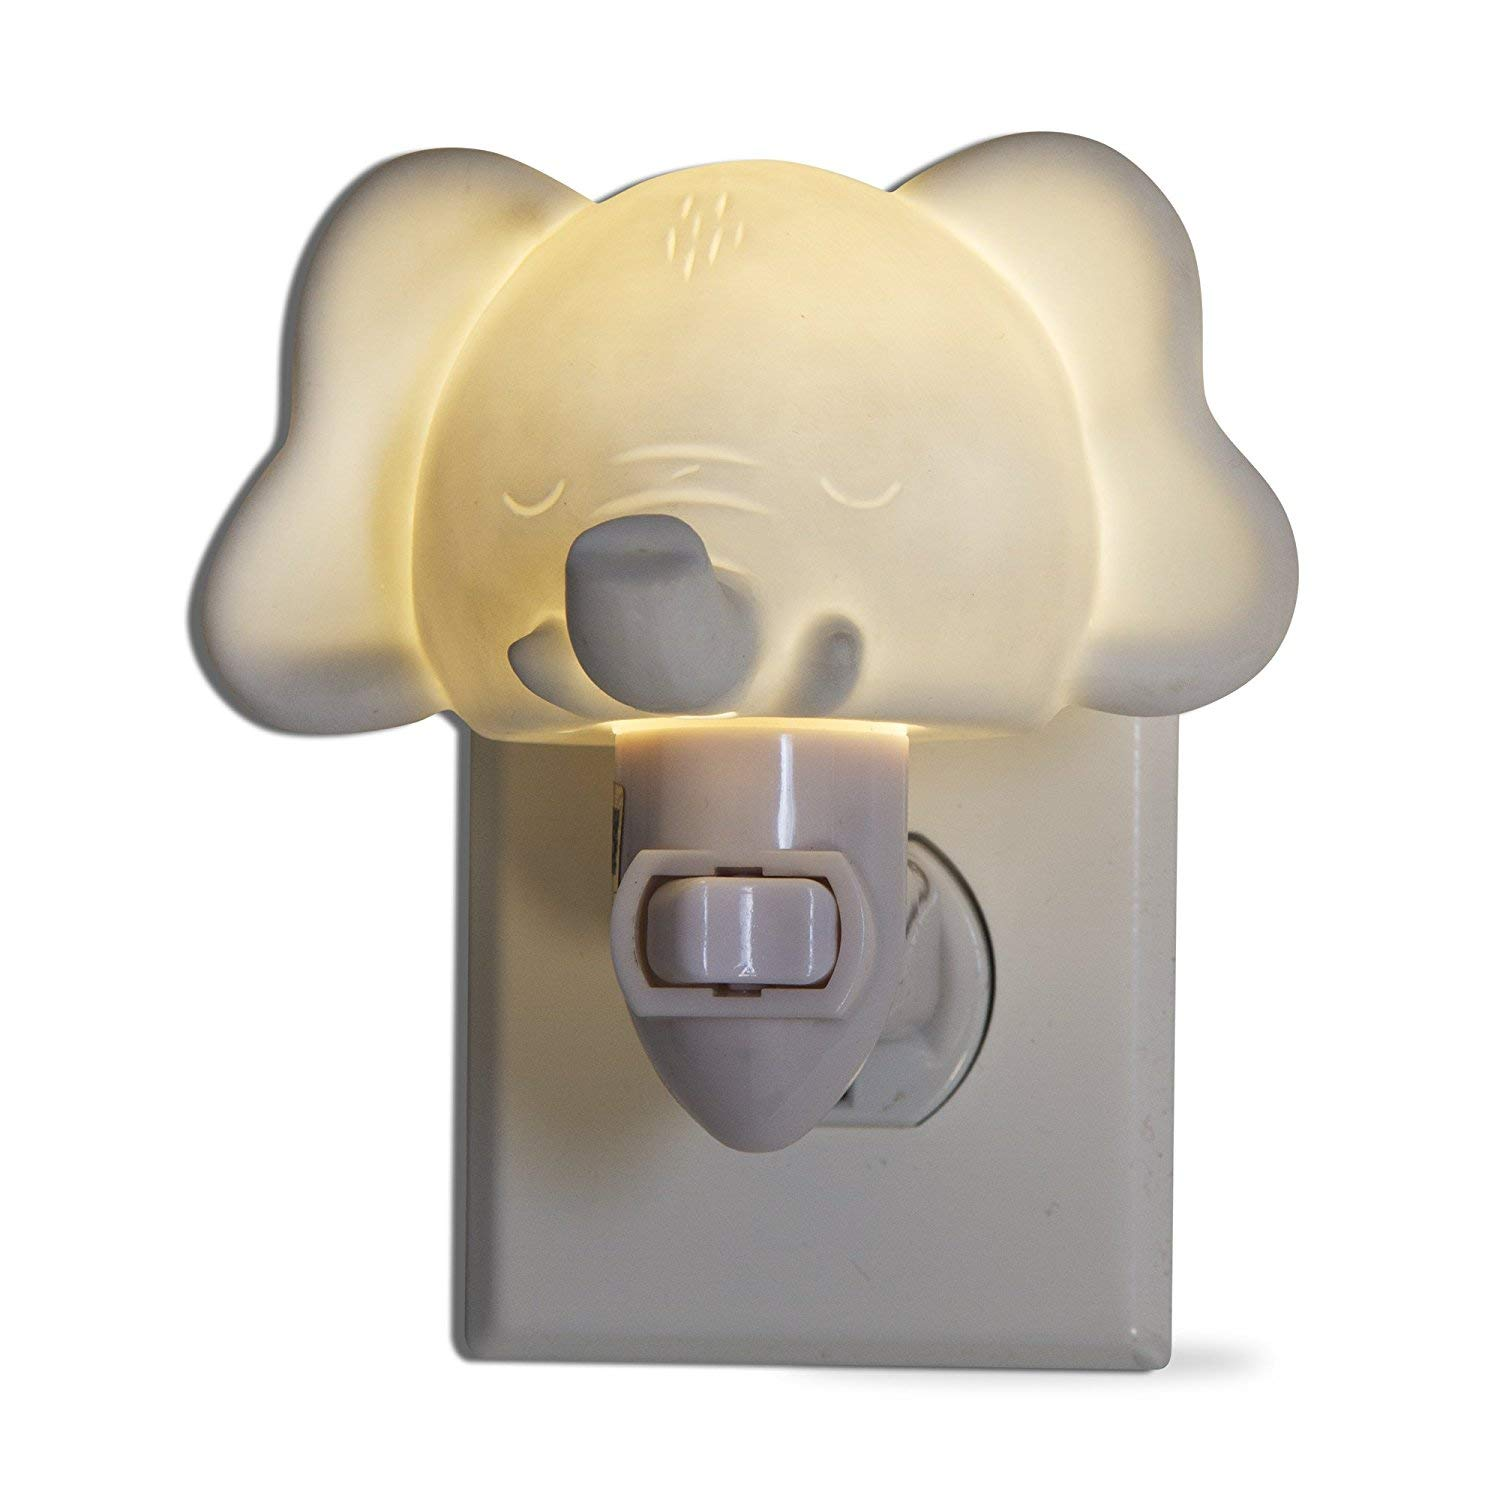 tag - Elephant LED Plug-In Night Light, A Perfect Addition to Any Child's Room or Nursery, White